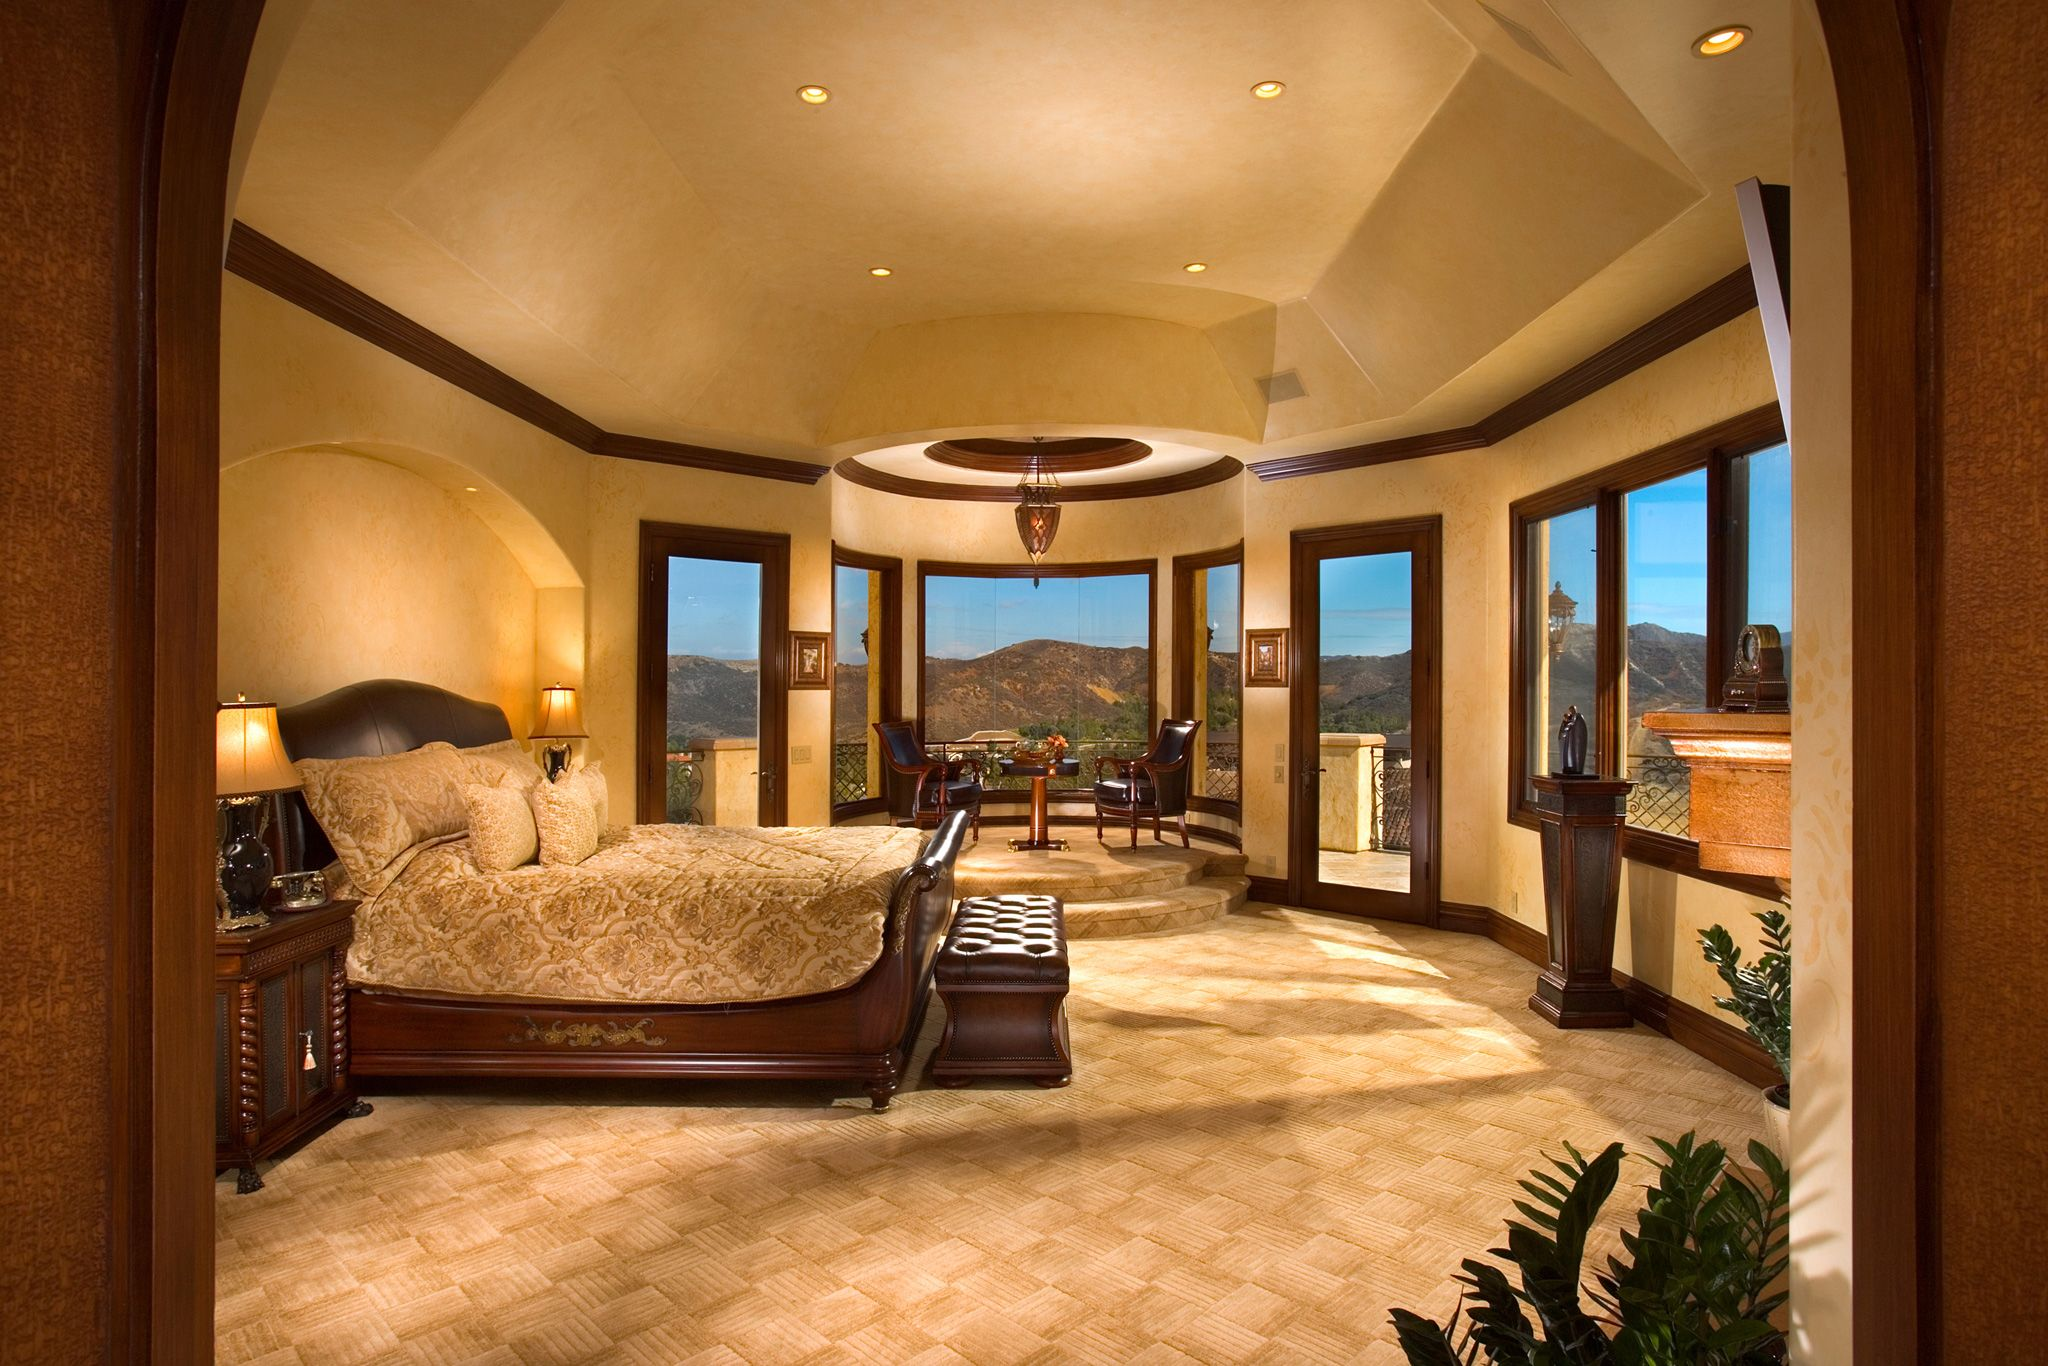 21 incredible master bedrooms design ideas luxury master Master bedroom design ideas